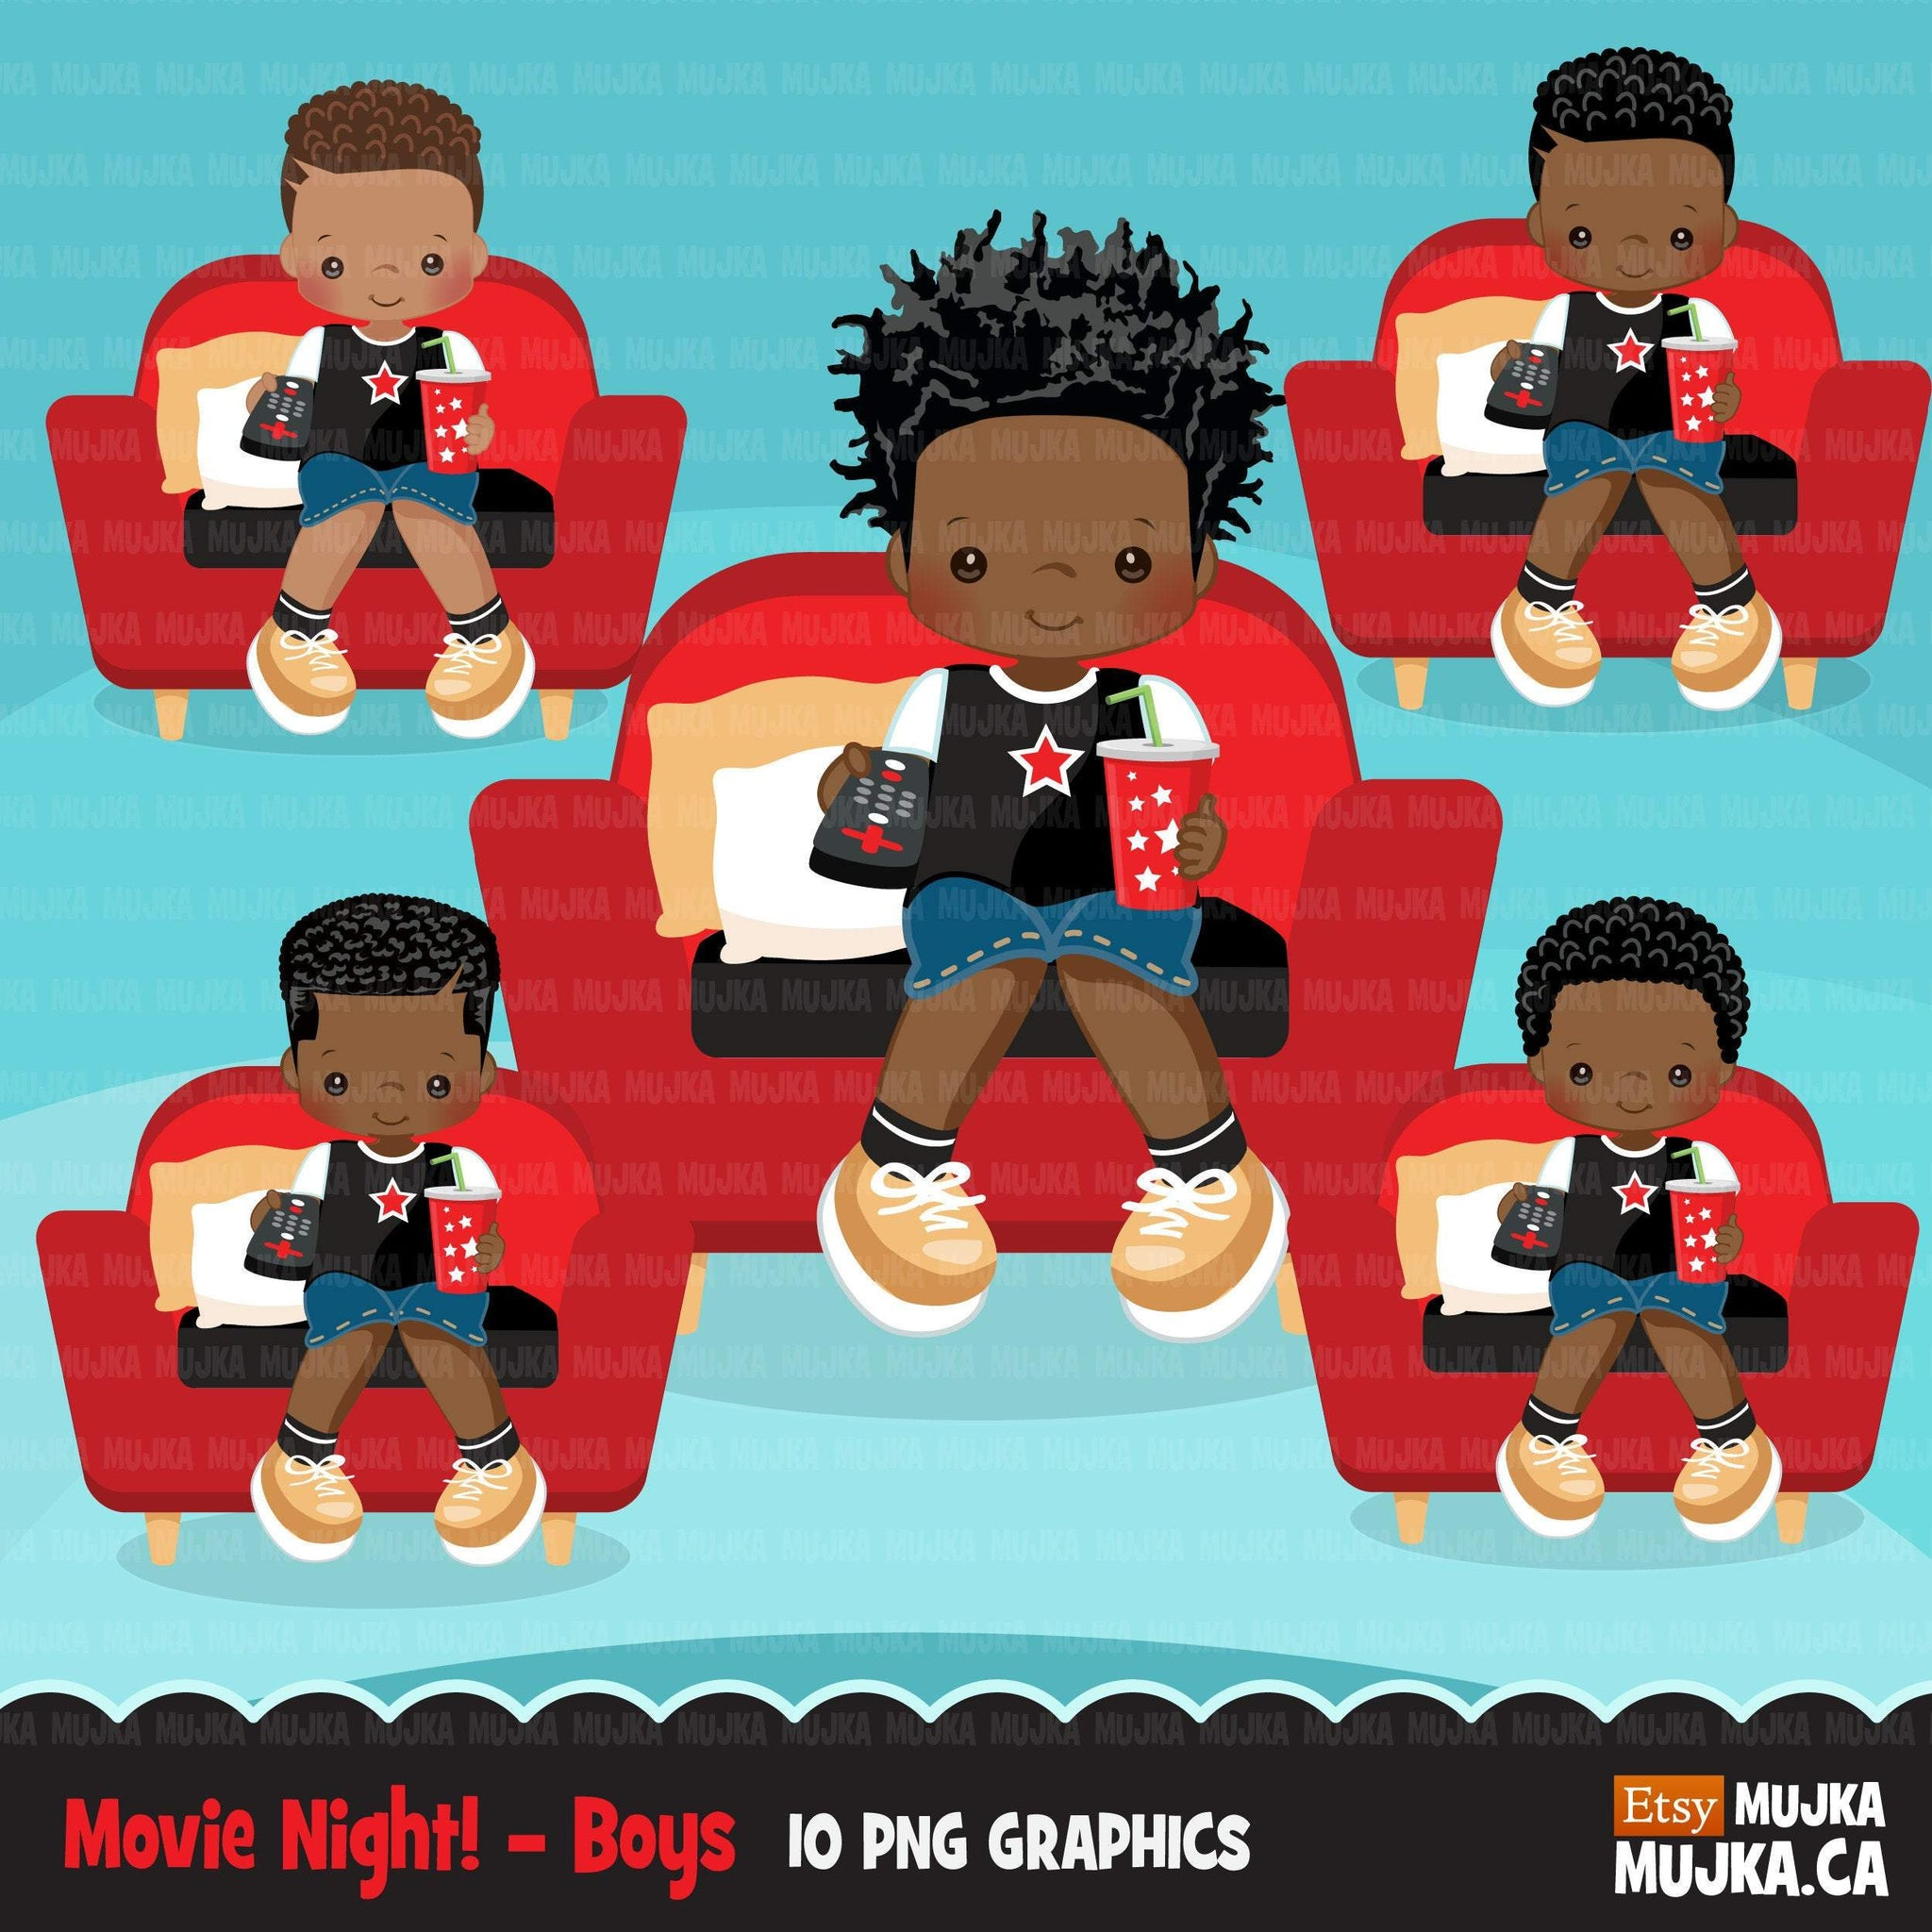 Movie night Clipart, movie birthday party, black boys graphics, TV remote, popcorn, sleepover party Png clip art